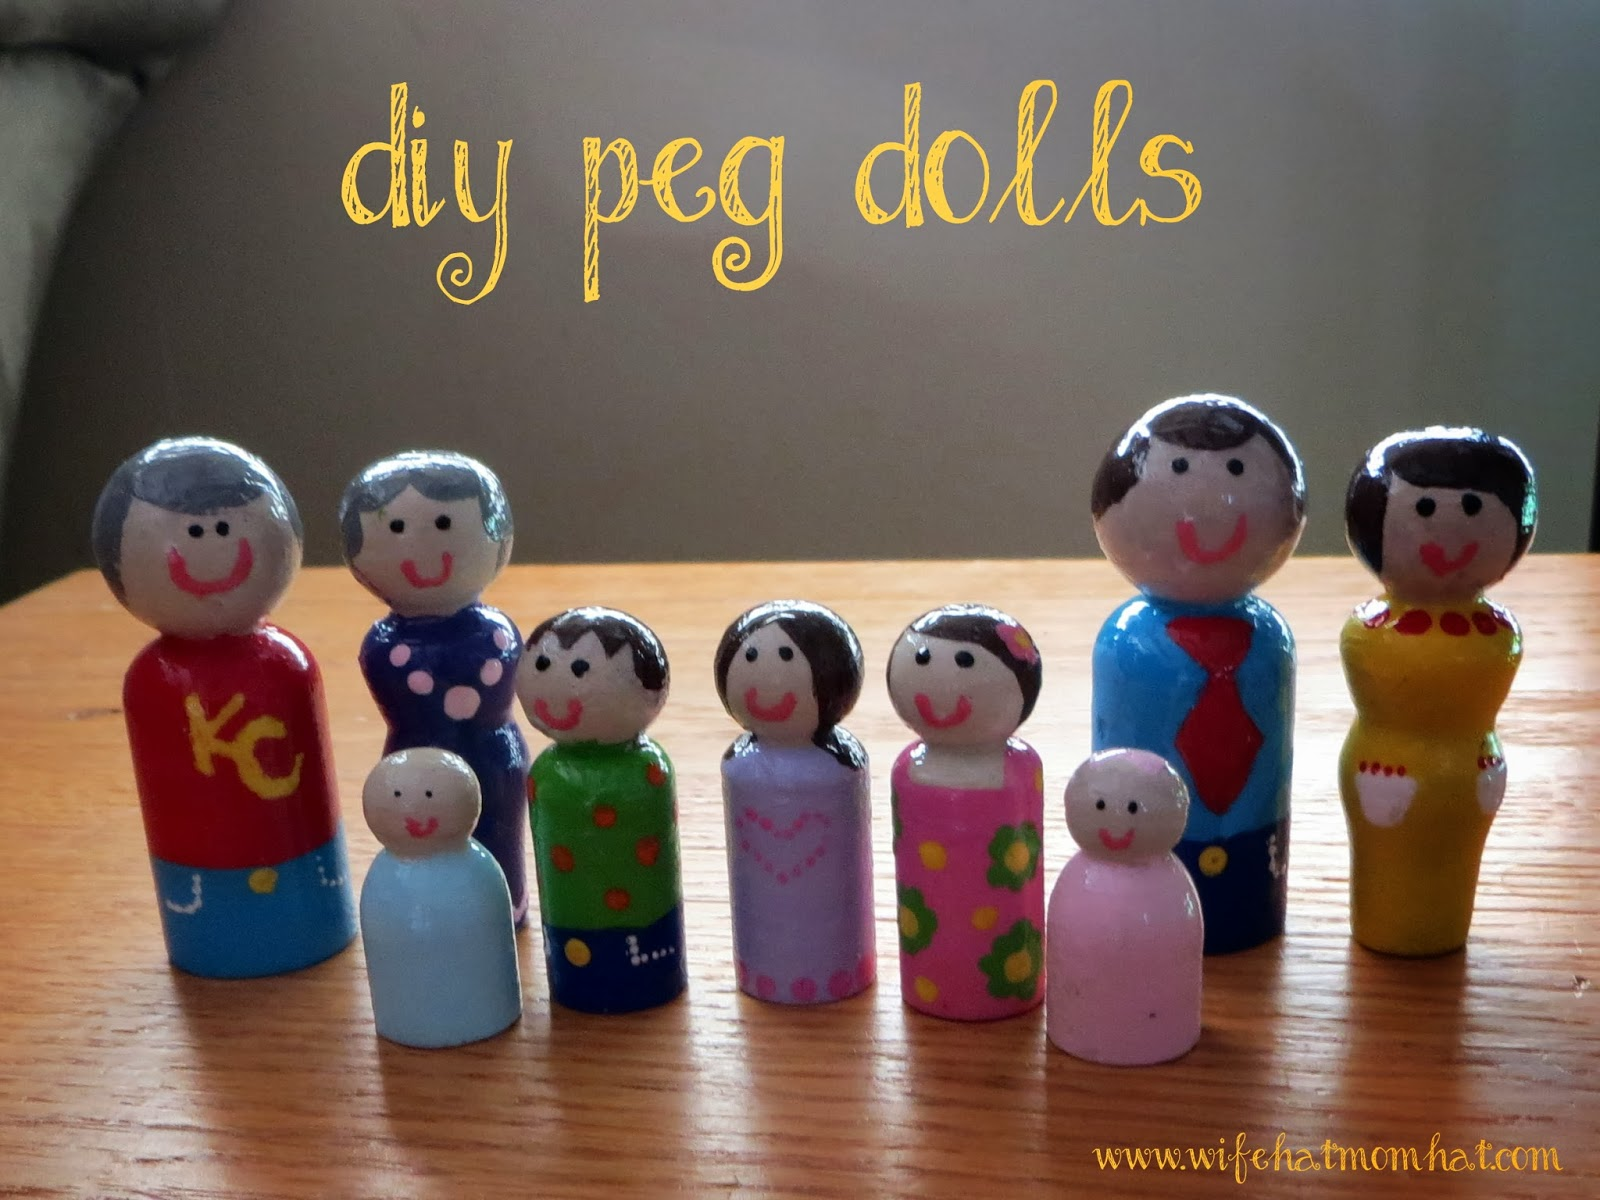 DIY Peg Dolls from Wife Hat Mom Hat